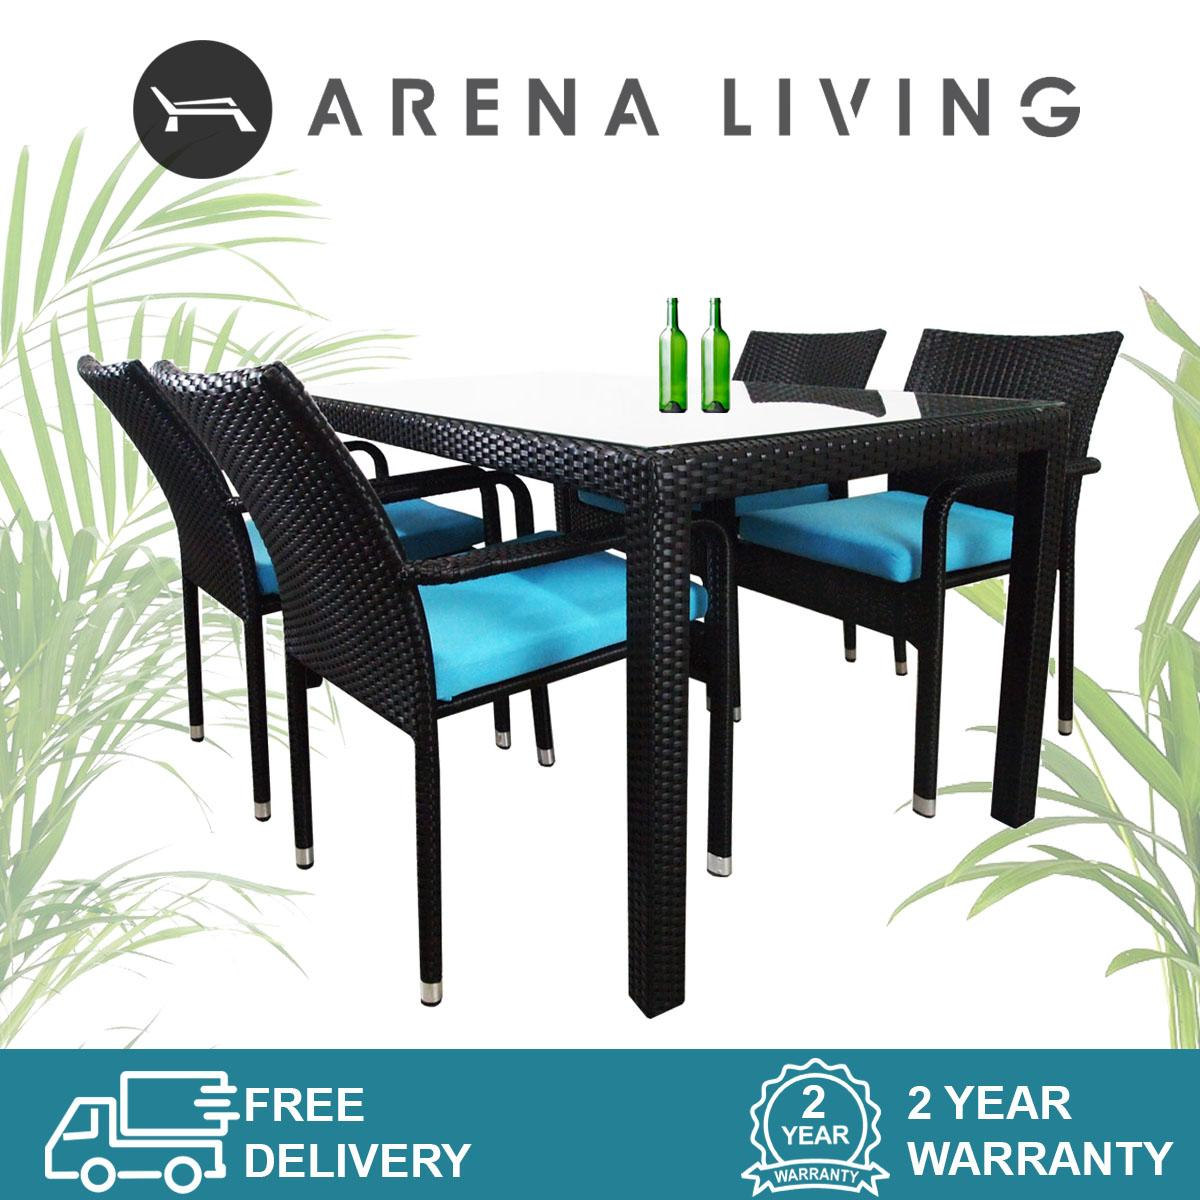 Boulevard 4 Chair Dining Set Blue Cushion, Outdoor Furniture by Arena Living™